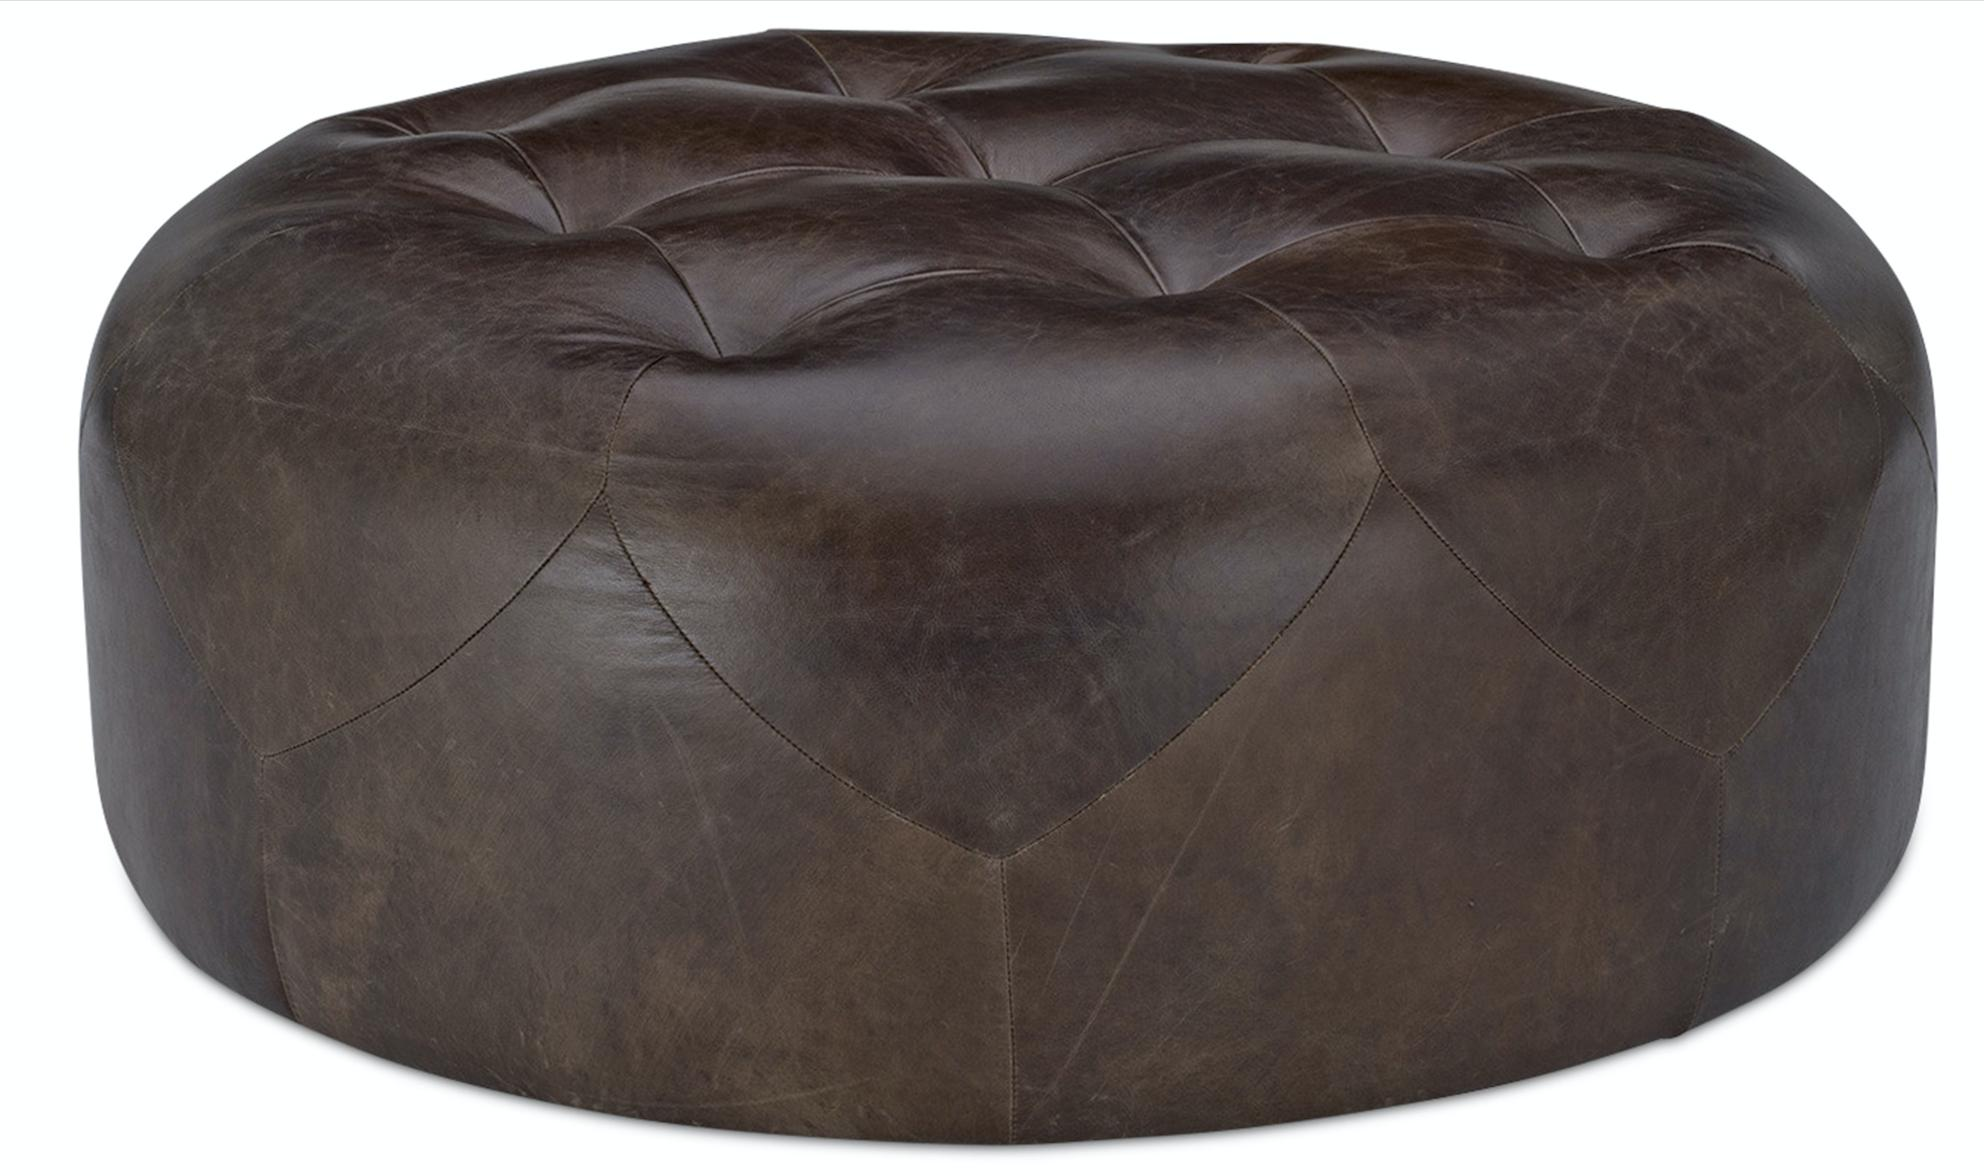 grand pouf capitonn cuir marron. Black Bedroom Furniture Sets. Home Design Ideas